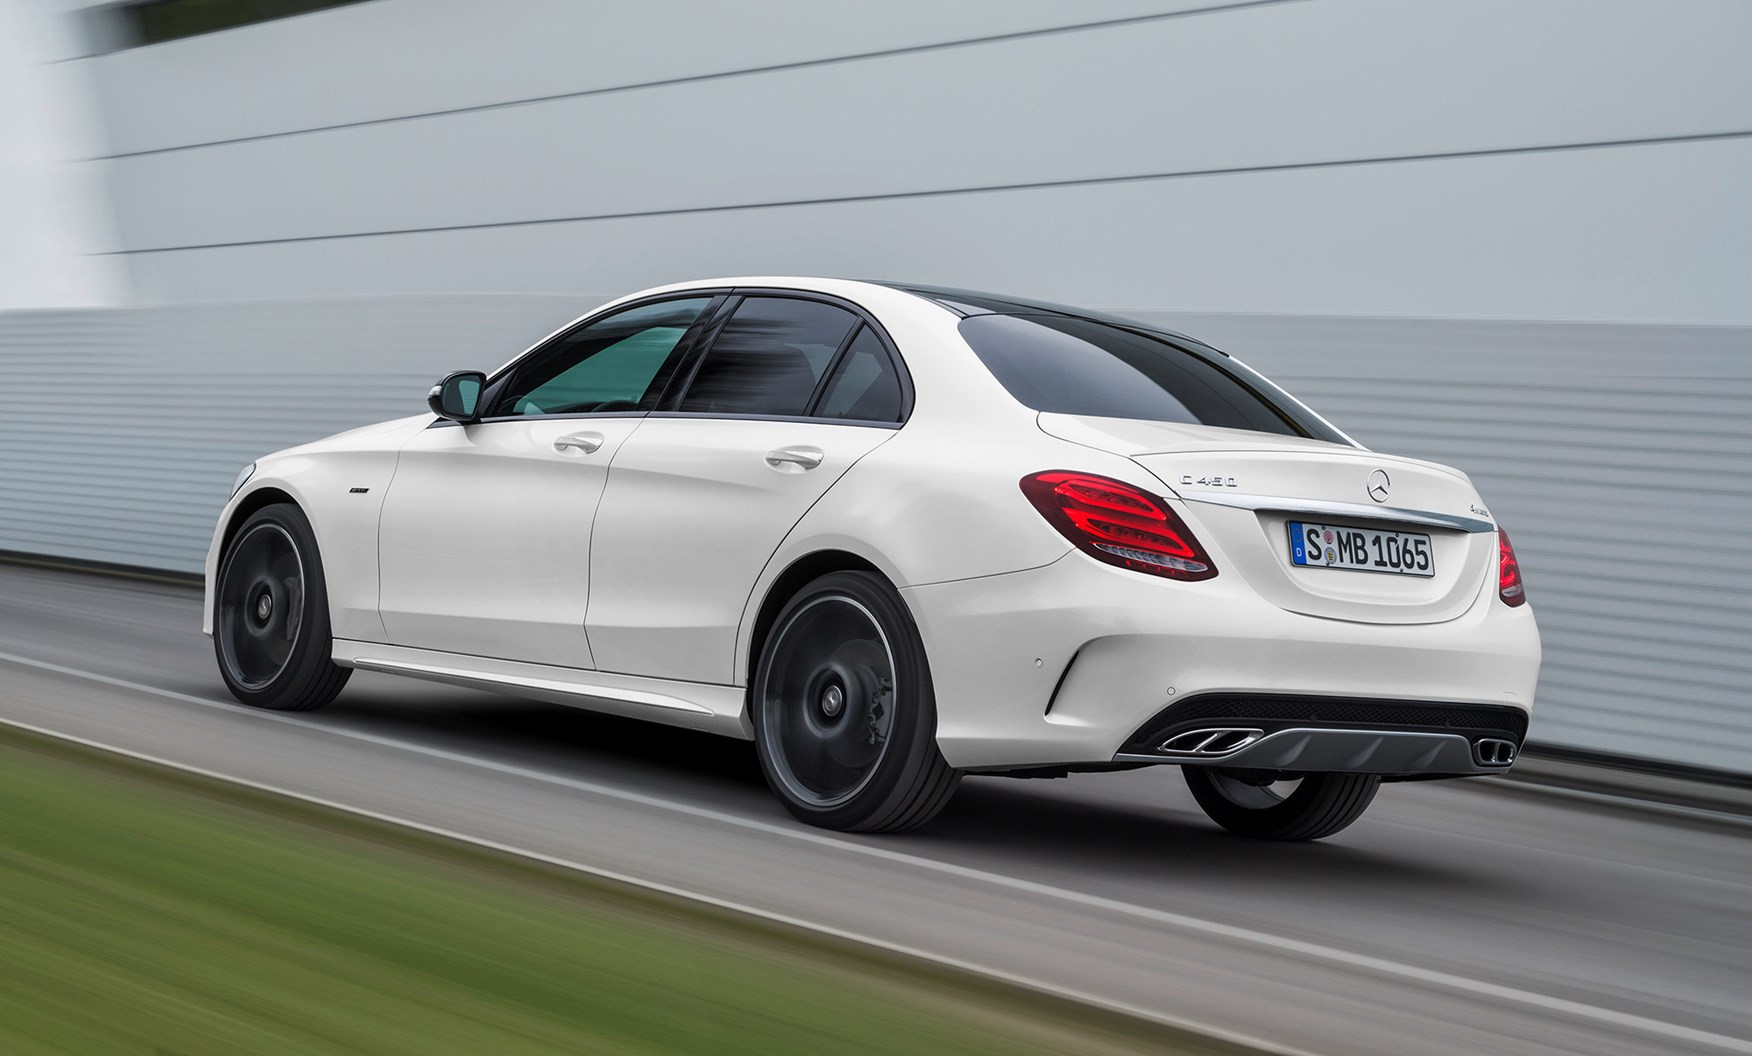 Mercedes c450 amg 4matic 2015 review by car magazine for Mercedes benz in colorado